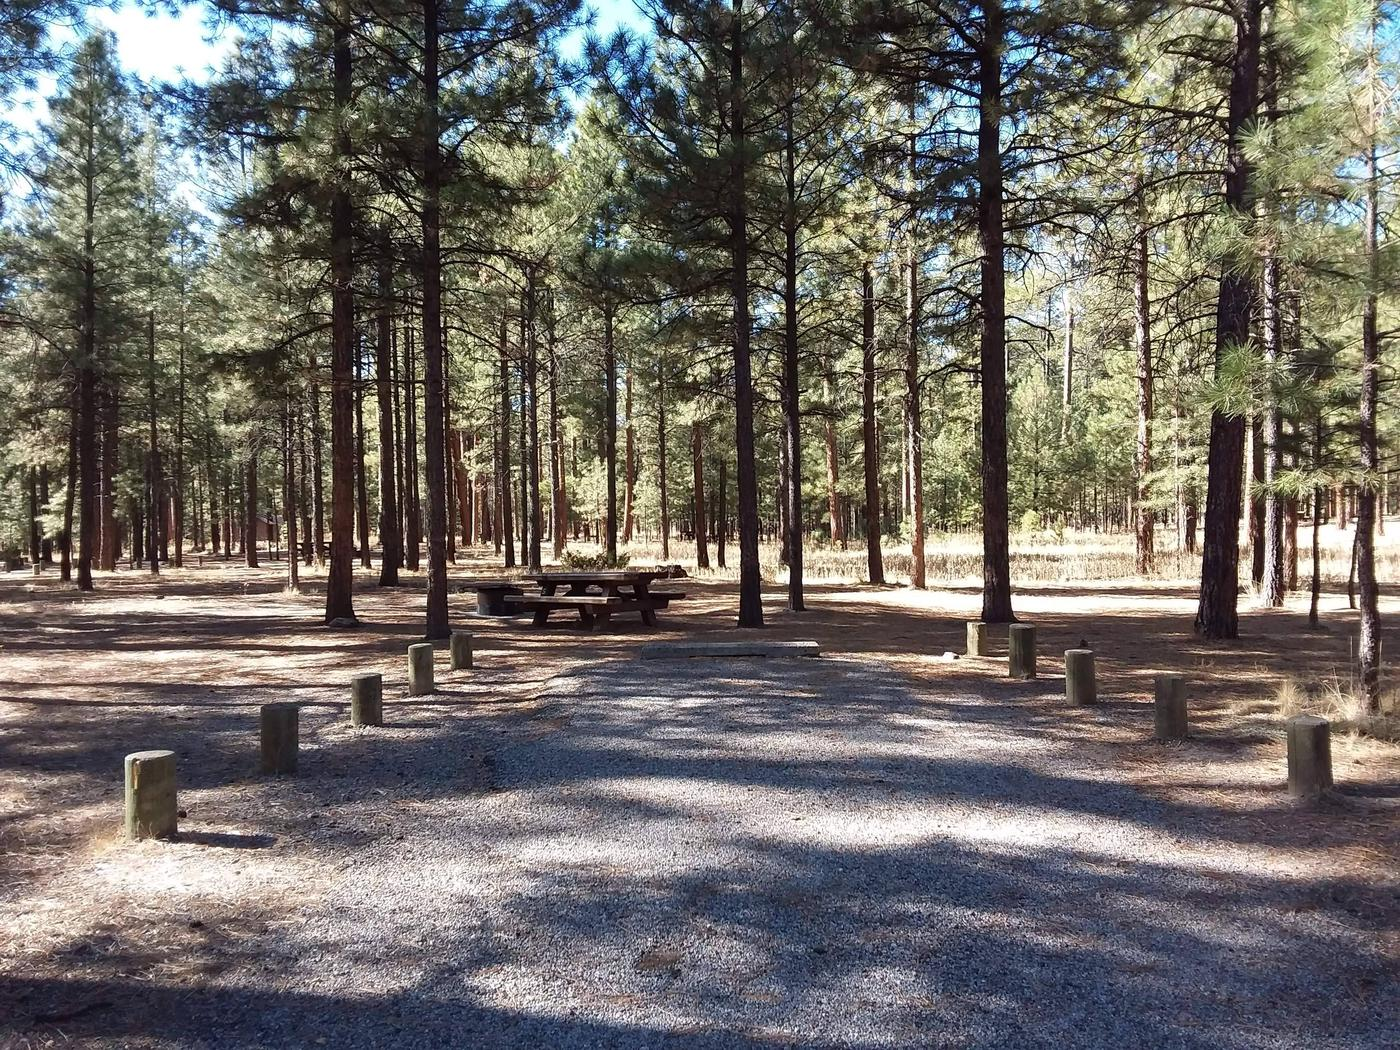 Campsite number 5 has a picnic table, fire pit, and driveway with pines providing shade.Site 5